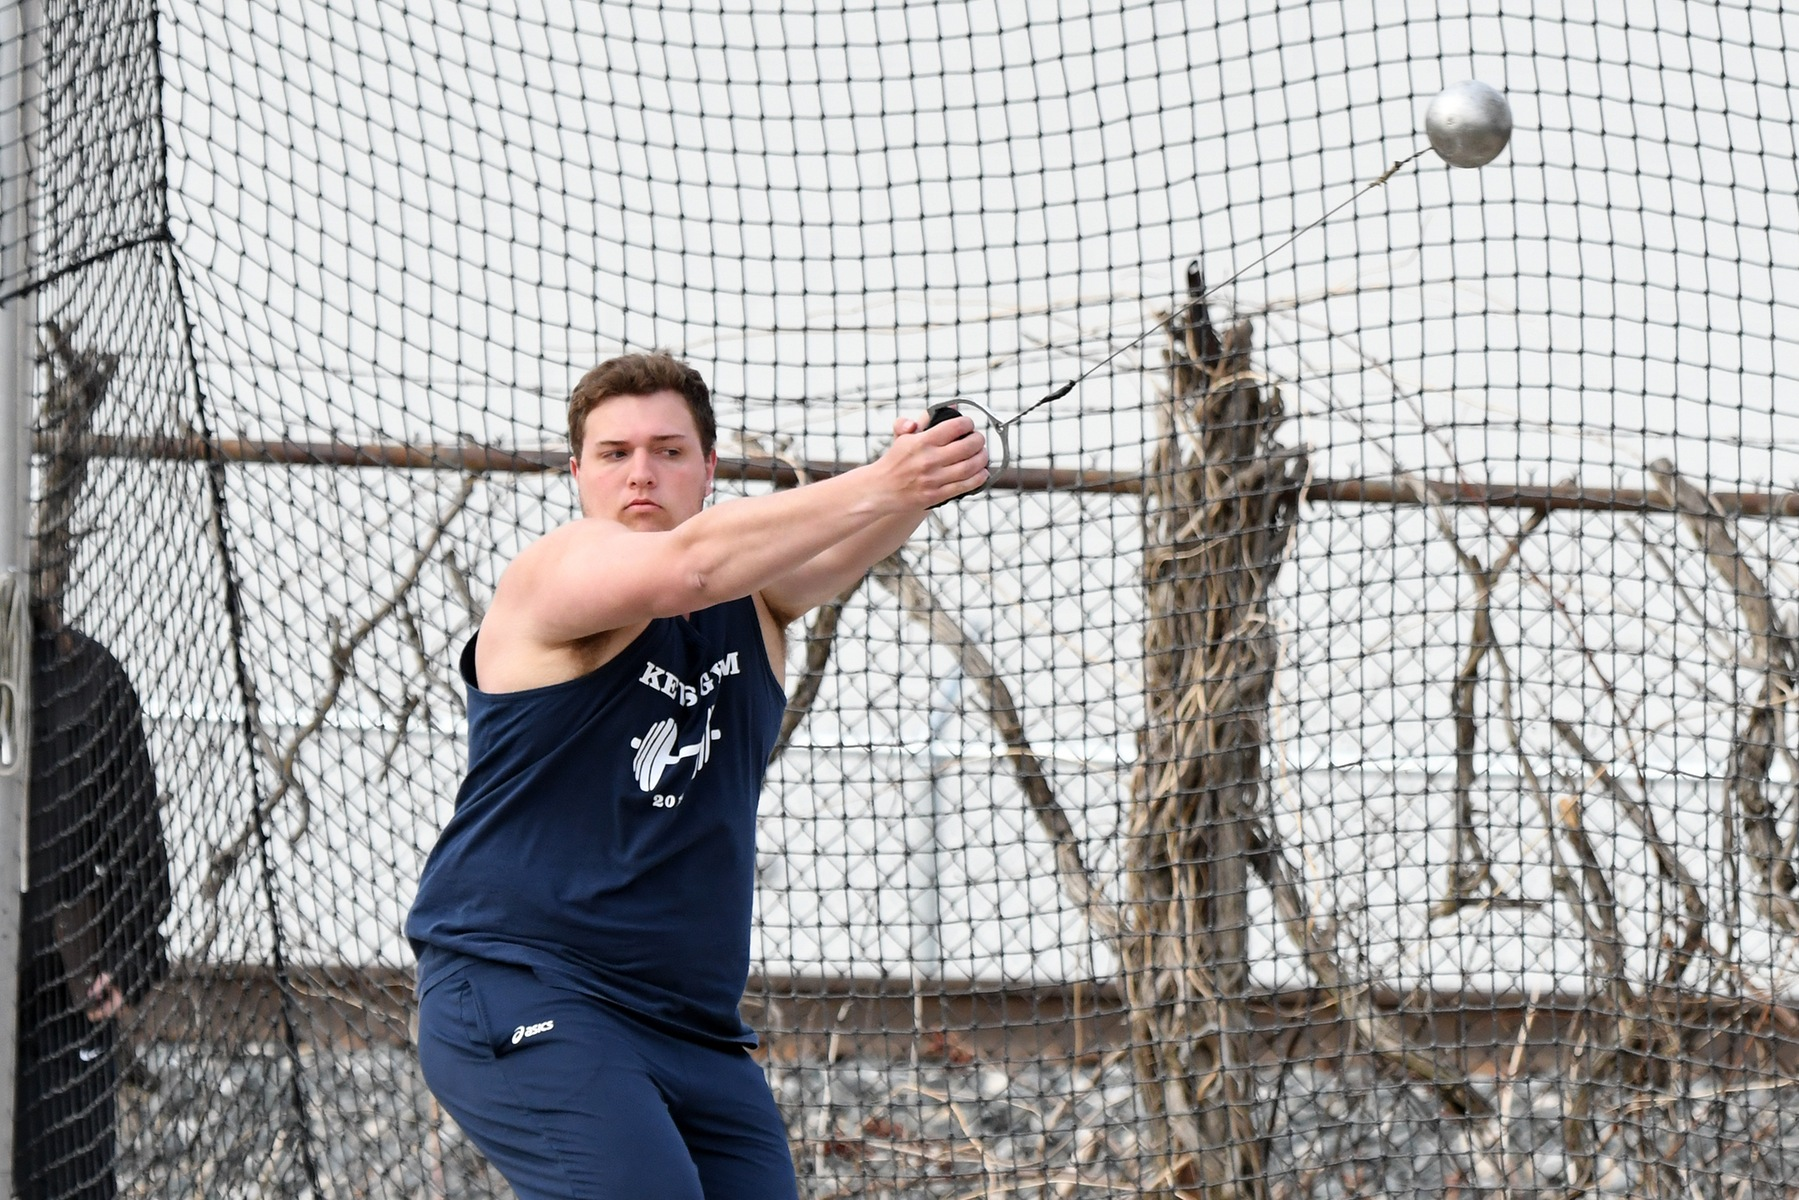 Chase Gaca releases the hammer throw